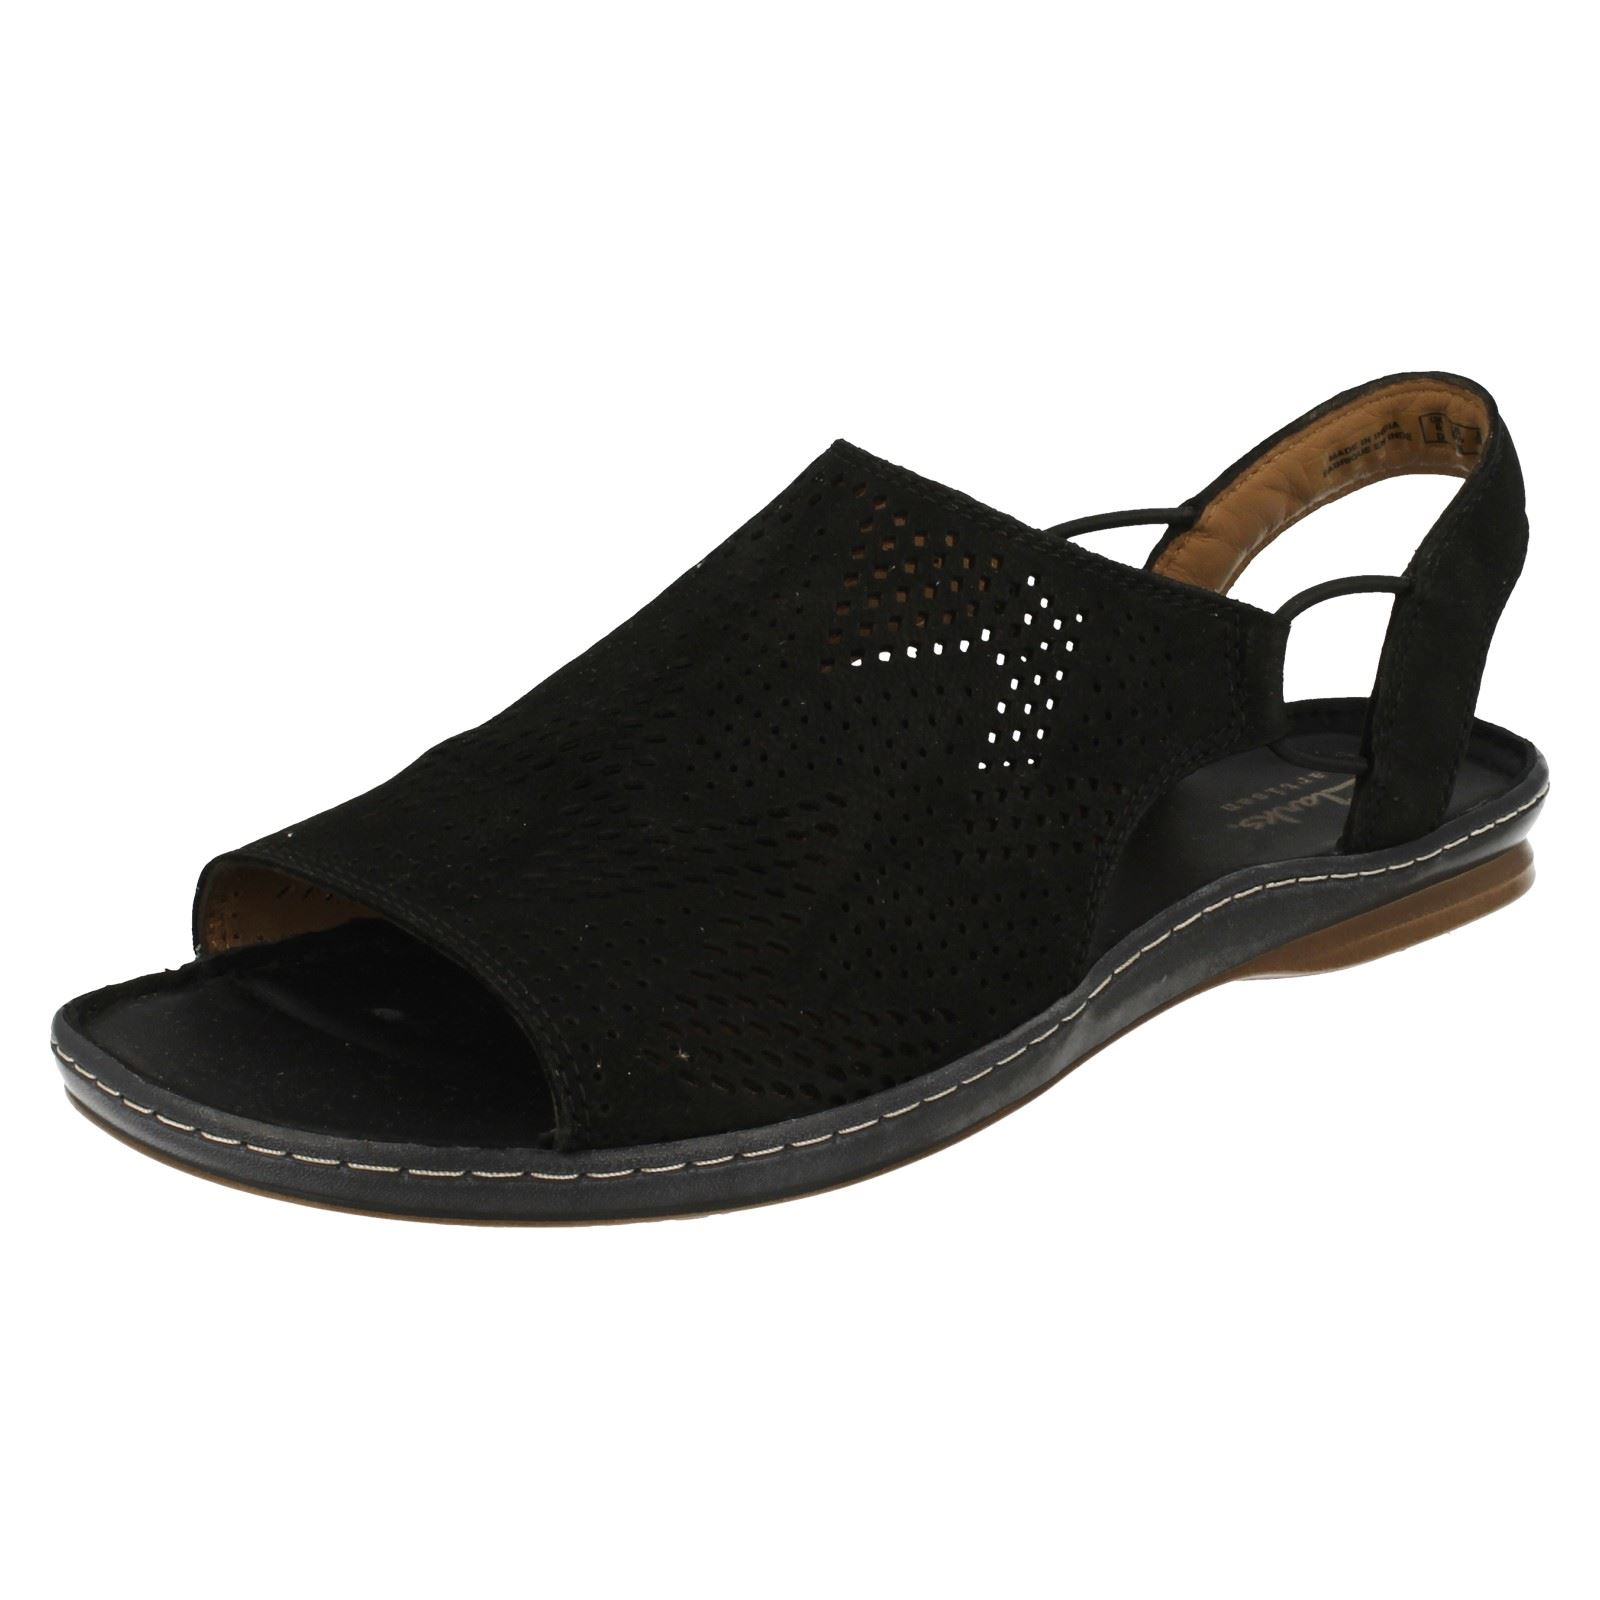 Men's/Women's Ladies Clarks Slip On Flat Sandals Sarla Diverse Cadence Diverse Sarla new design At a lower price Maintenance capability RB92 02b05e